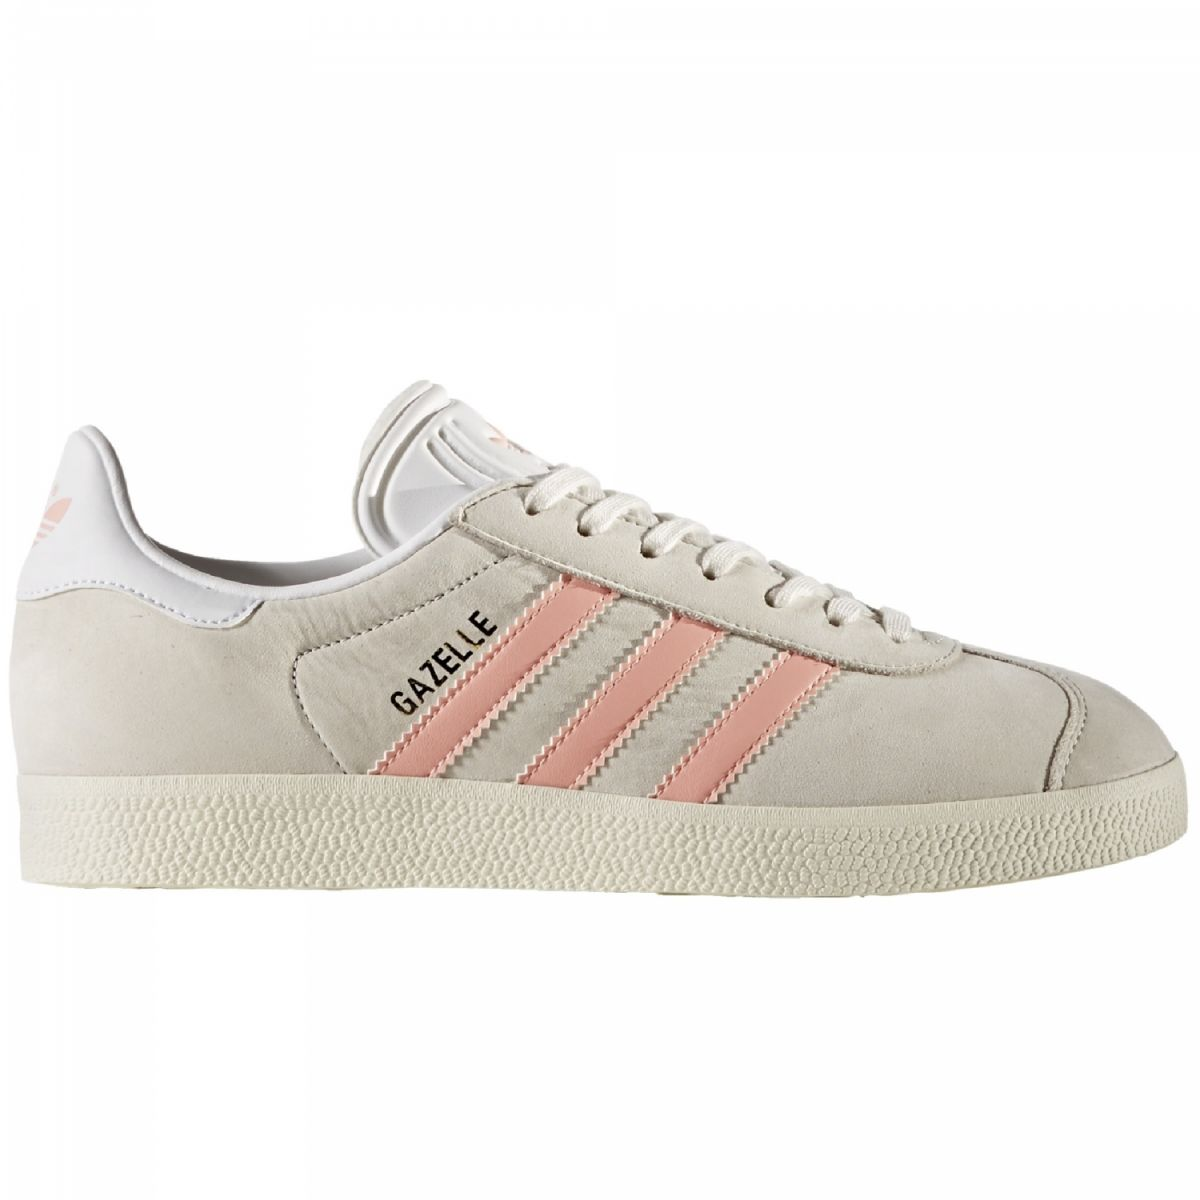 adidas originals gazelle sneaker damen schuhe beige rosa. Black Bedroom Furniture Sets. Home Design Ideas